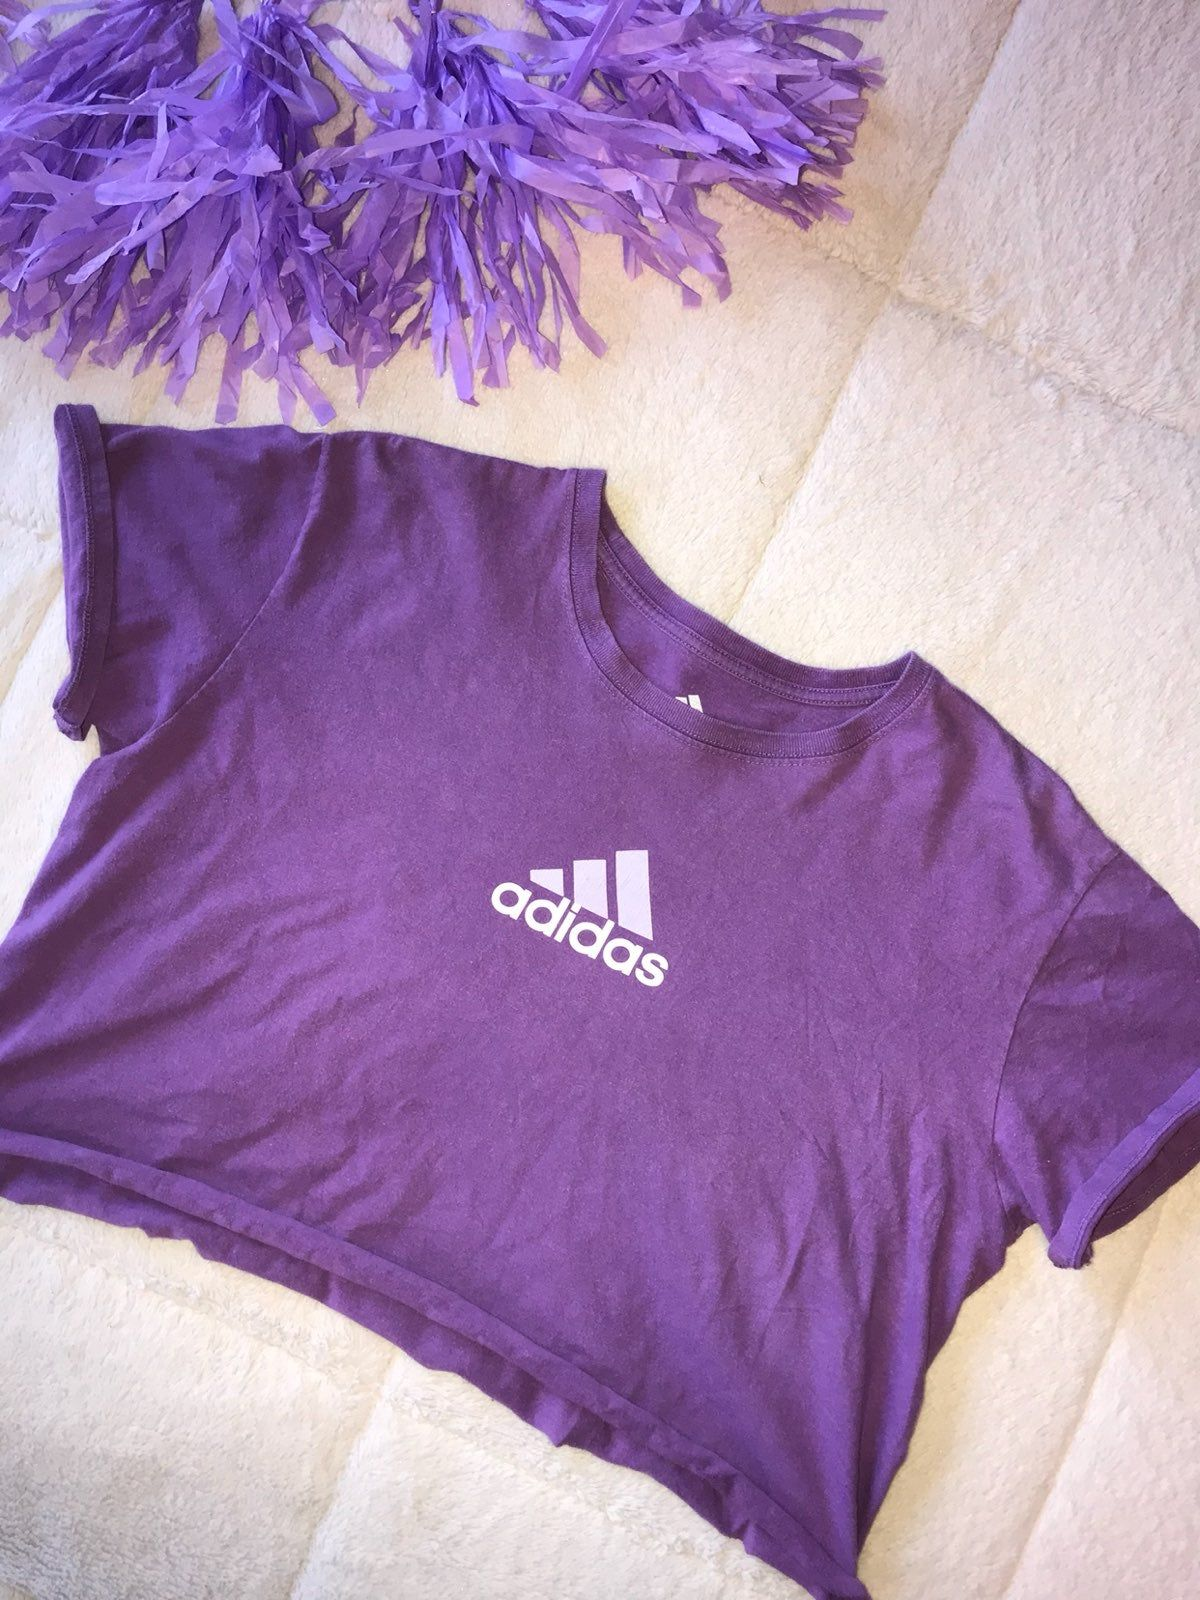 Purple Adidas Size L Cropped By Yours Truly Adidas Logo In Front Smoke Free Adidas Crop Top Adidas Crop Adidas [ 1600 x 1200 Pixel ]